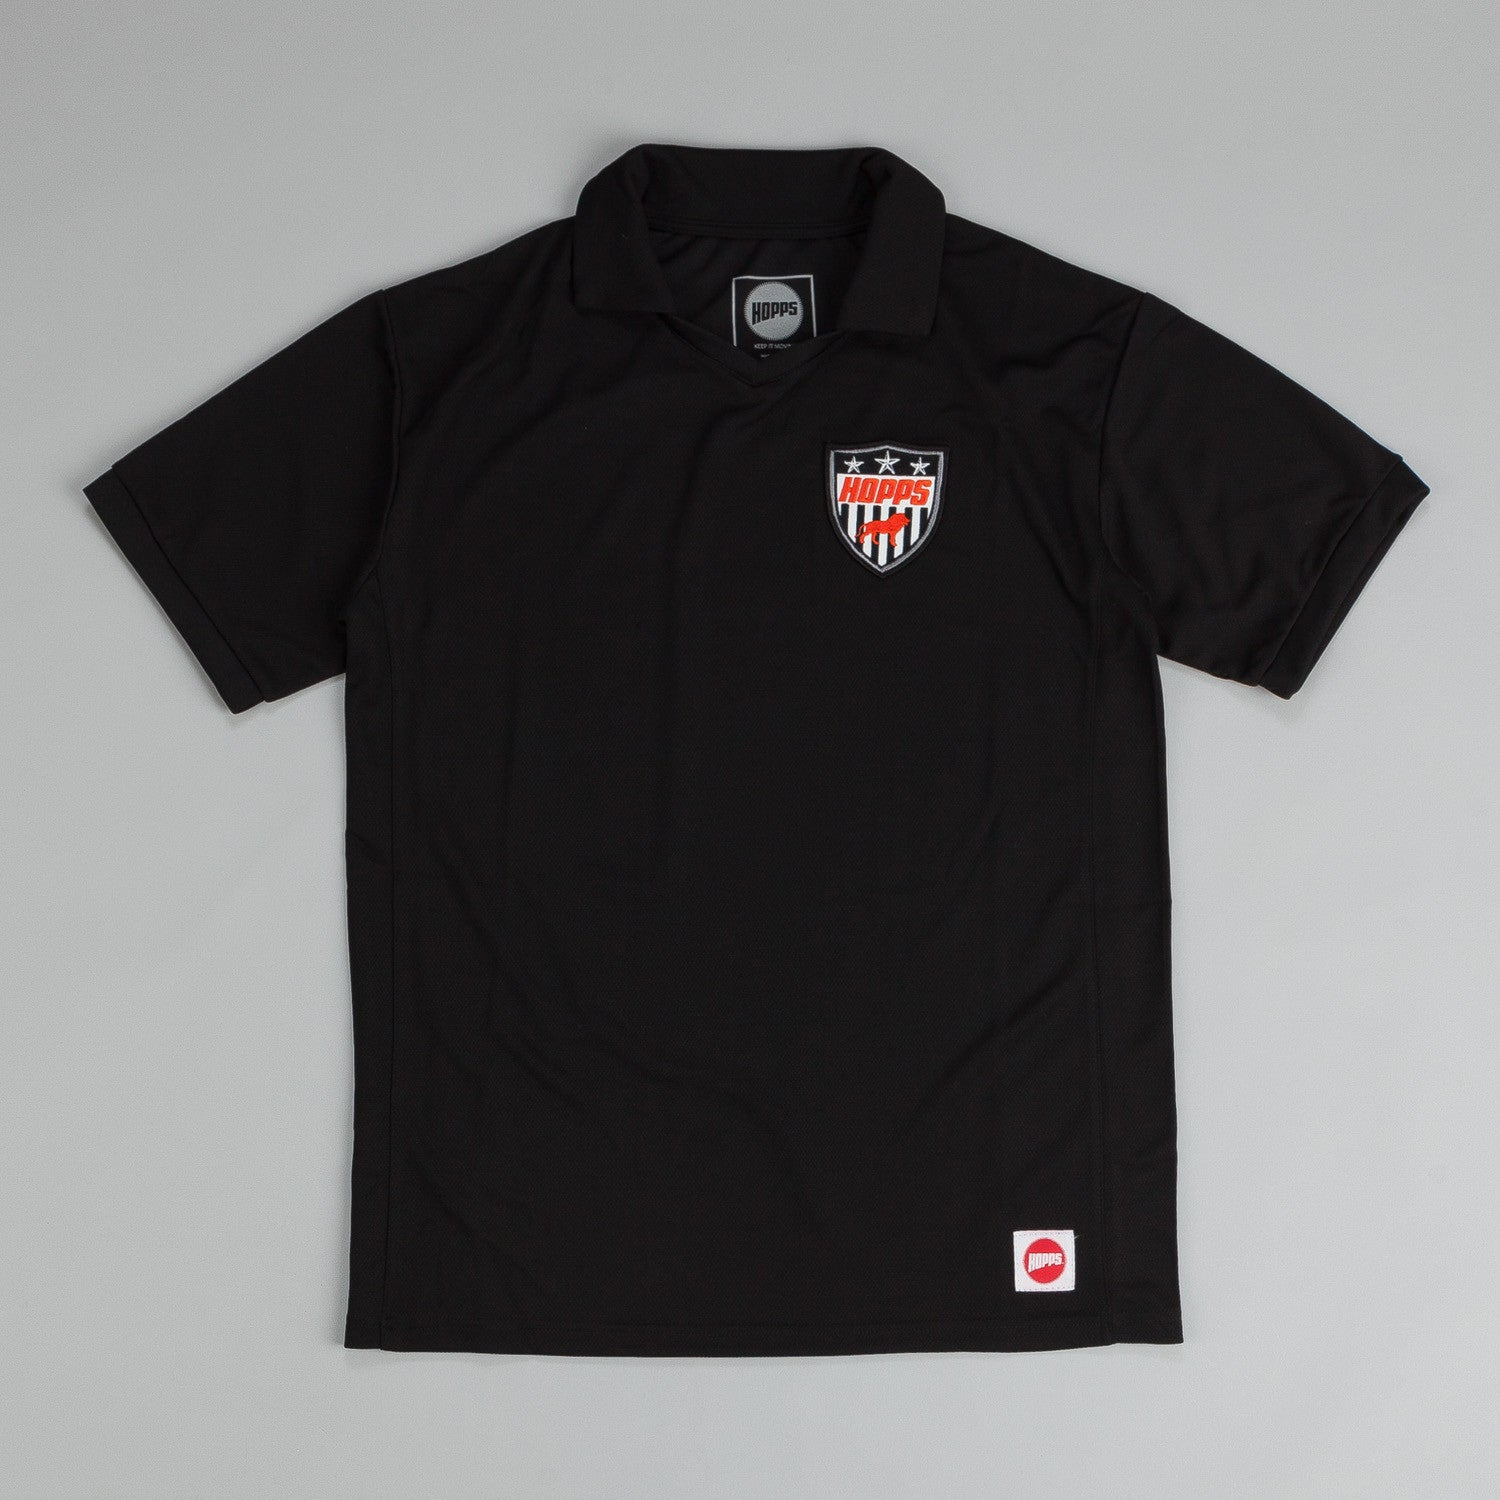 Hopps Lion Jersey T Shirt Black